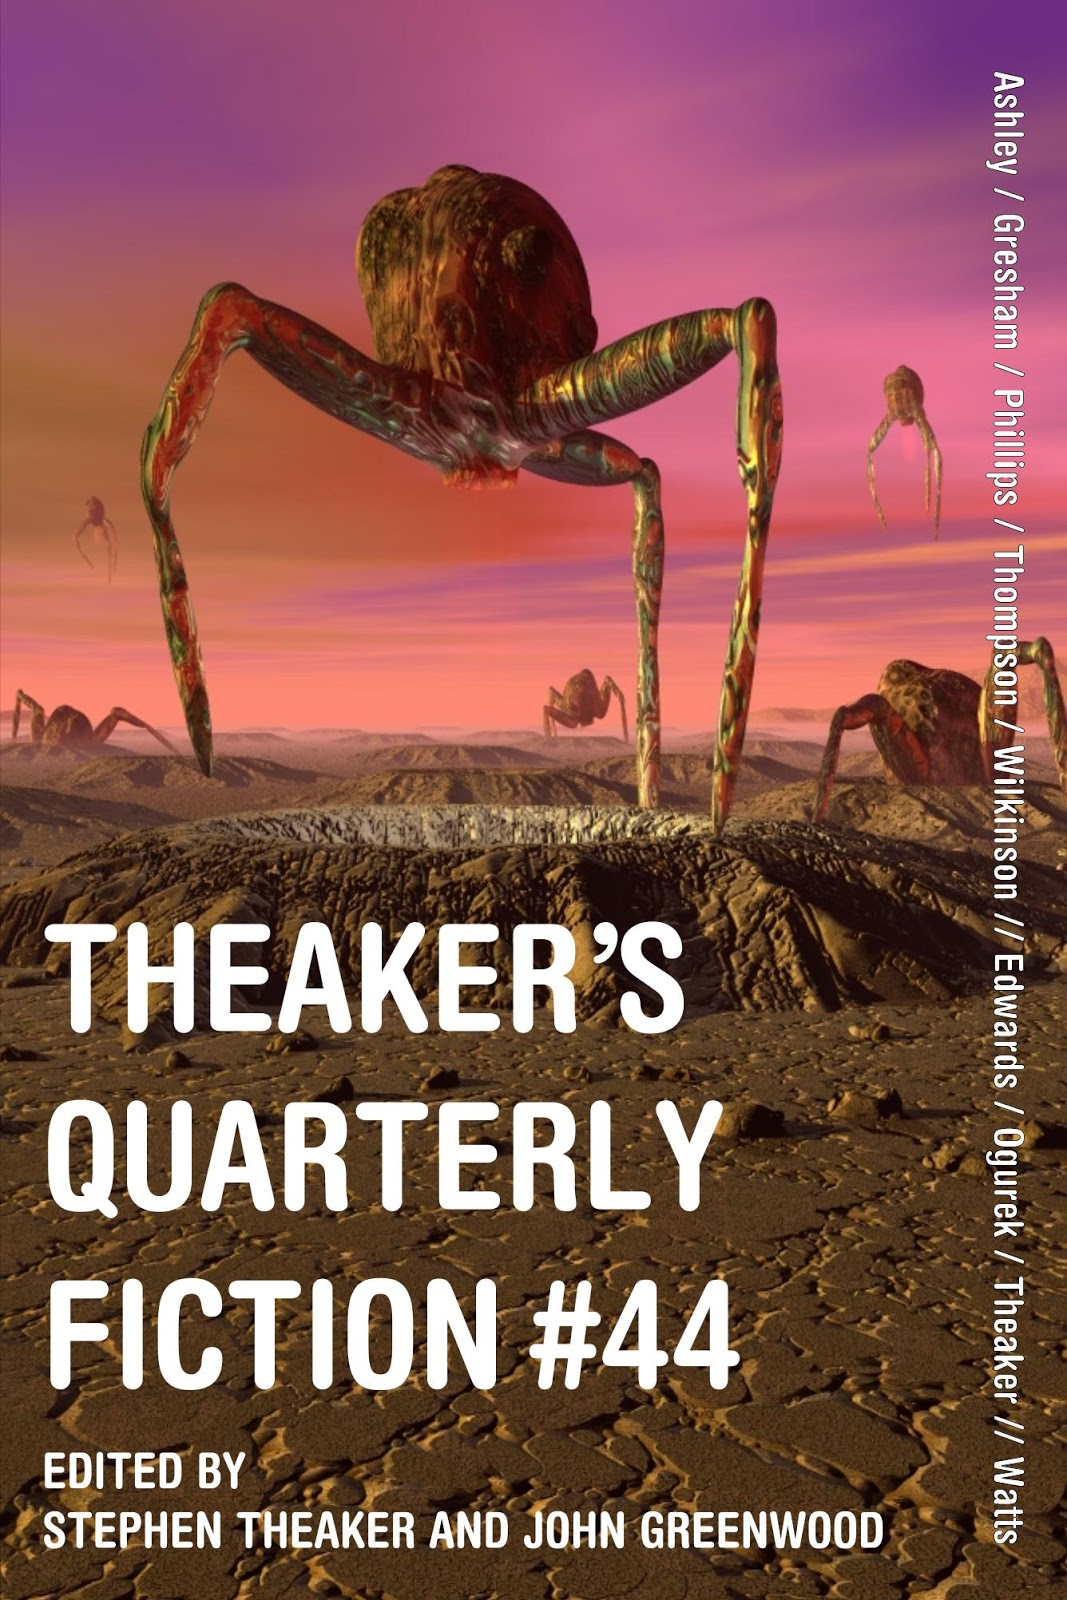 Theaker's Quarterly Fiction #44